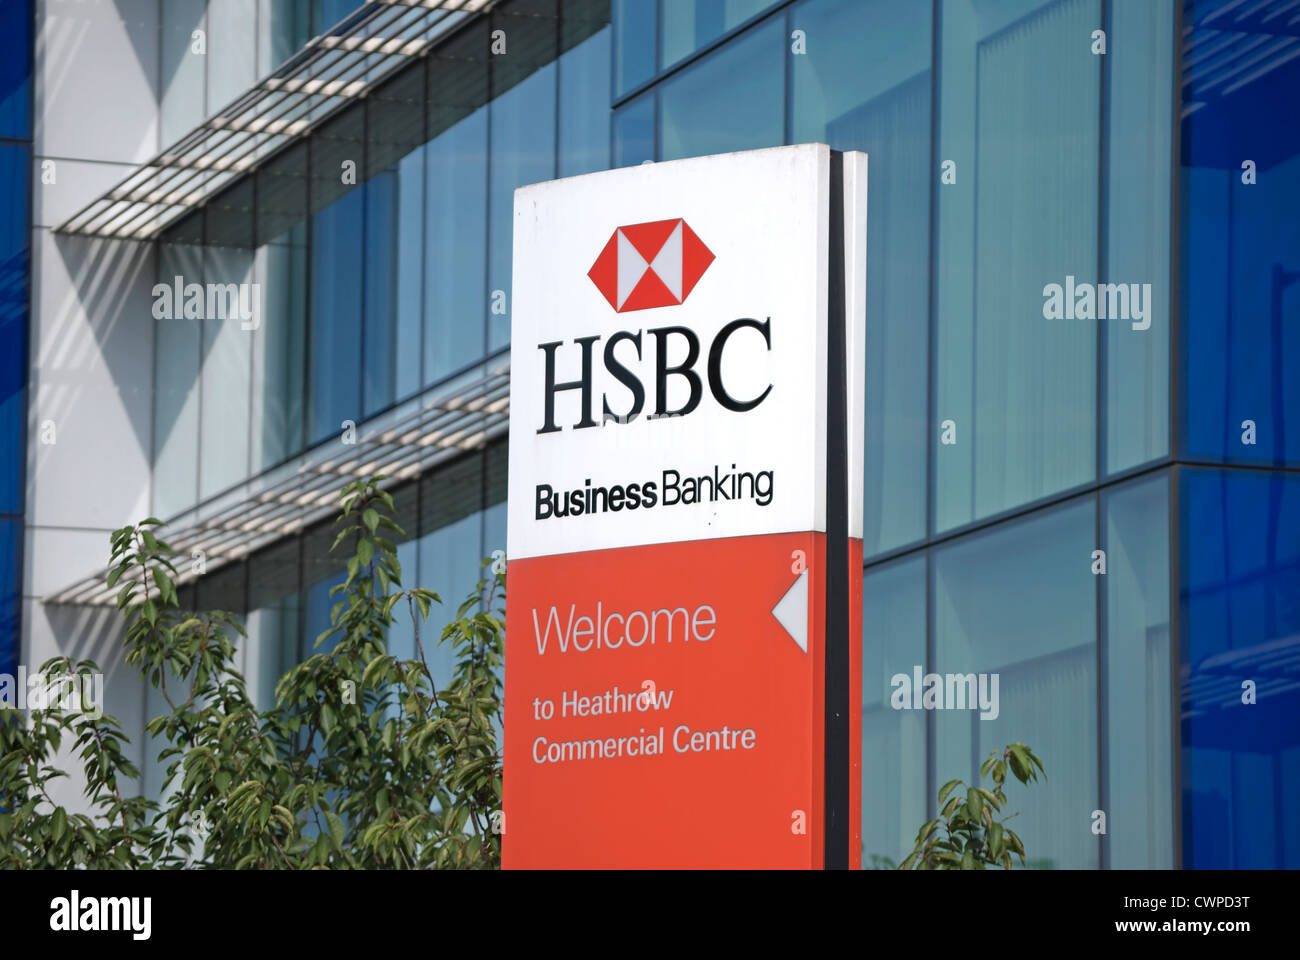 pillar sign for hsbc business banking at its heathrow